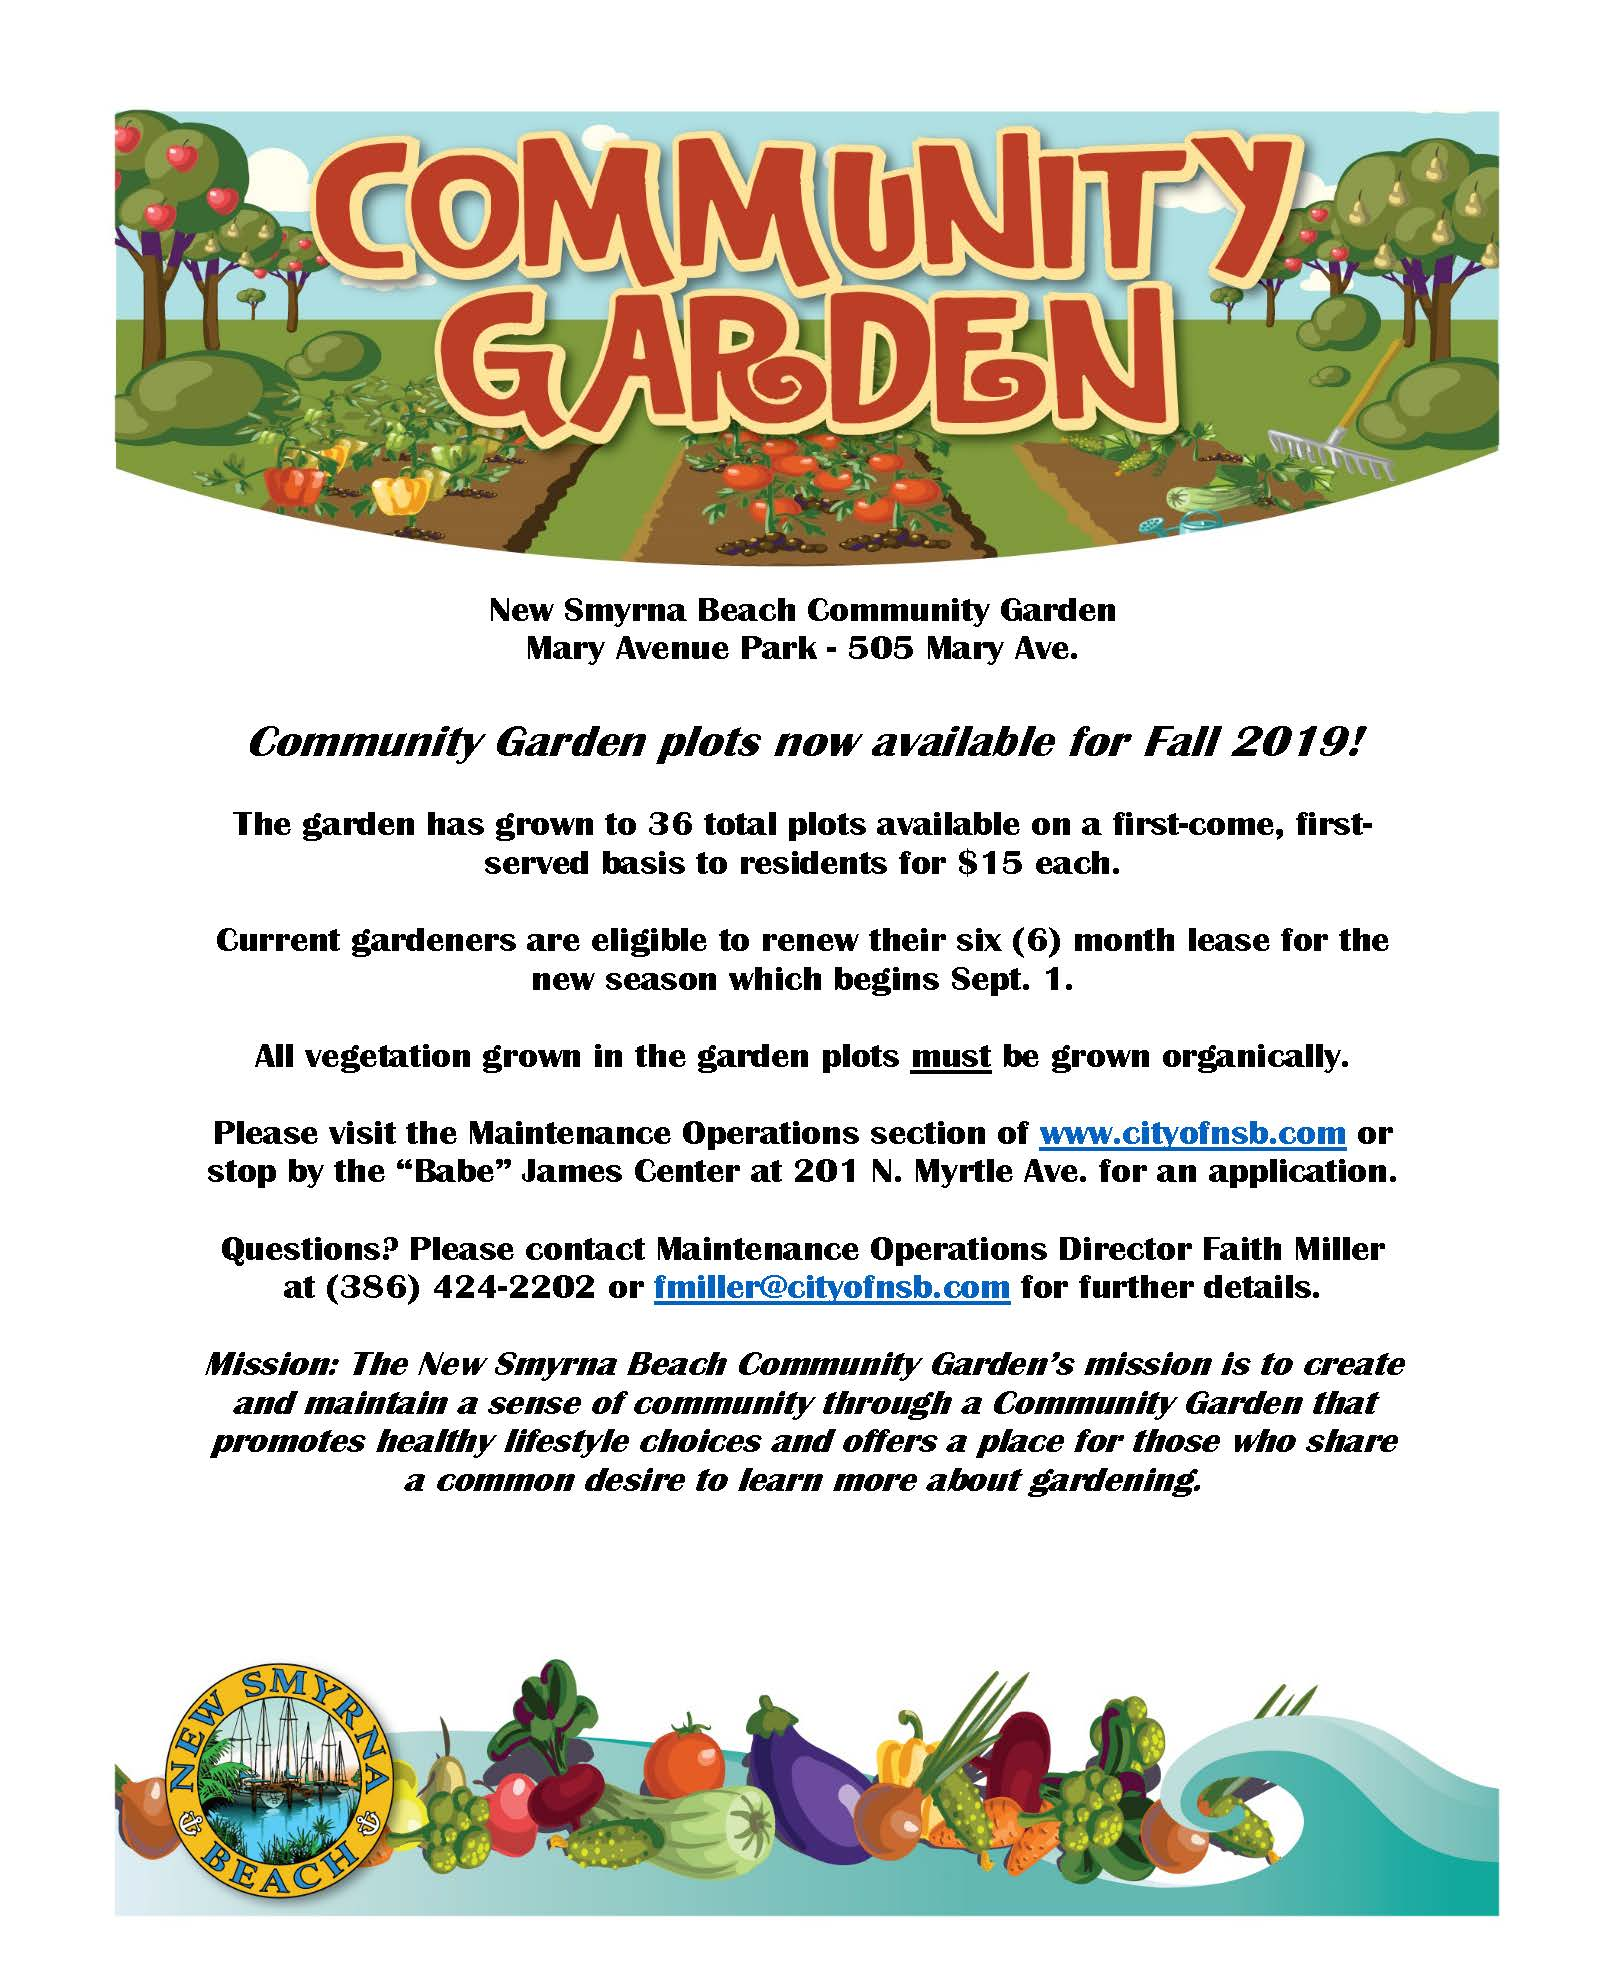 Community Garden flyer for Fall 2019 season. Please contact (386) 424-2202 for a full description.